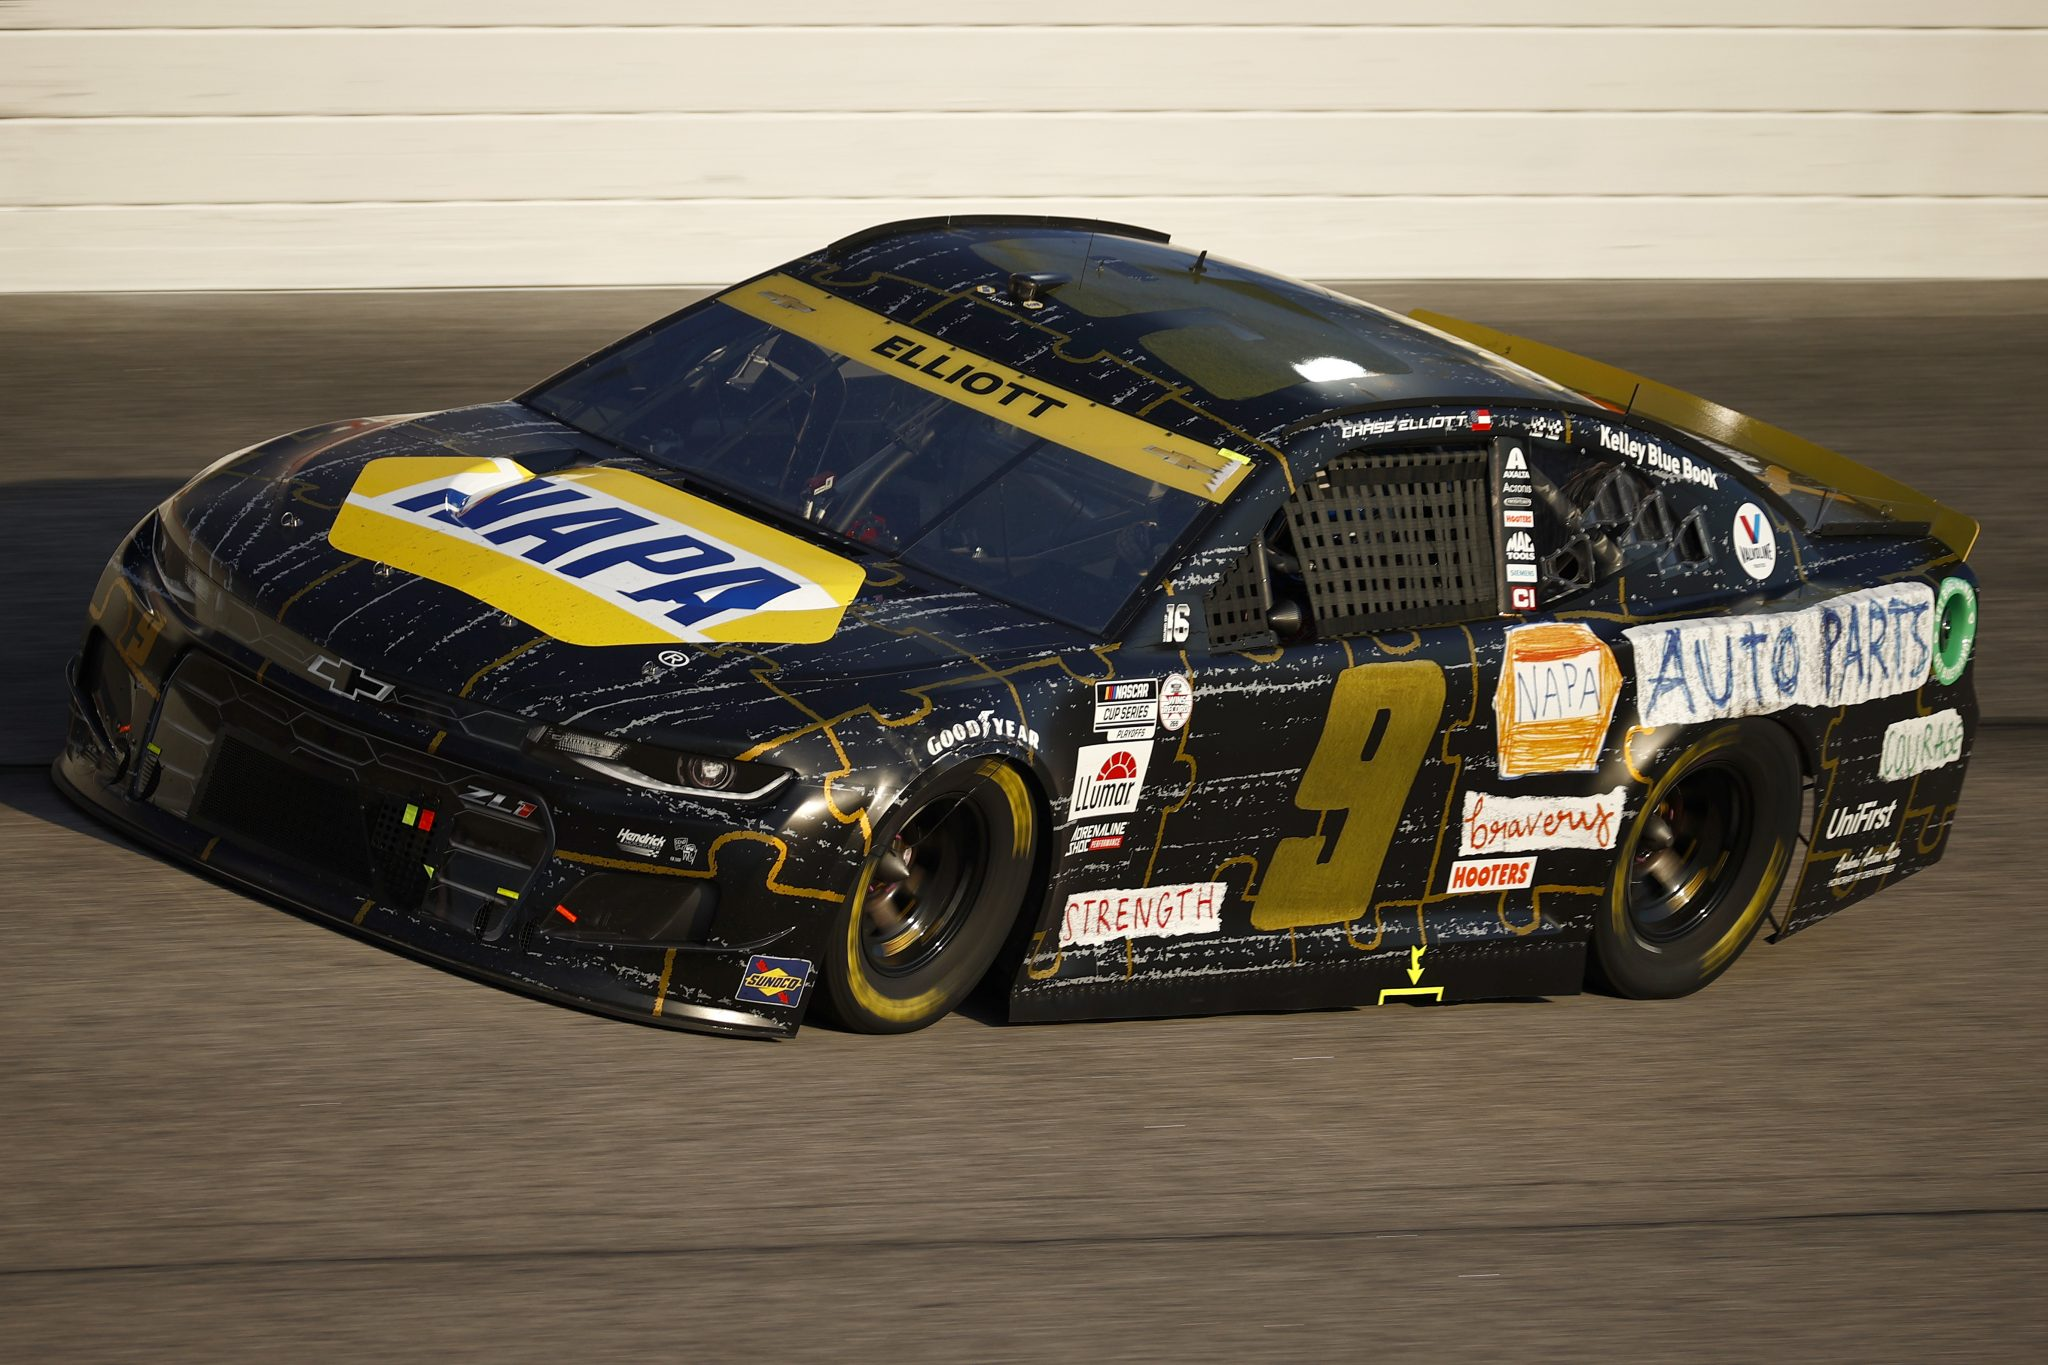 DARLINGTON, SOUTH CAROLINA - SEPTEMBER 05: Chase Elliott, driver of the #9 NAPA/Children's Chevrolet, drives during the NASCAR Cup Series Cook Out Southern 500 at Darlington Raceway on September 05, 2021 in Darlington, South Carolina. (Photo by Jared C. Tilton/Getty Images)   Getty Images